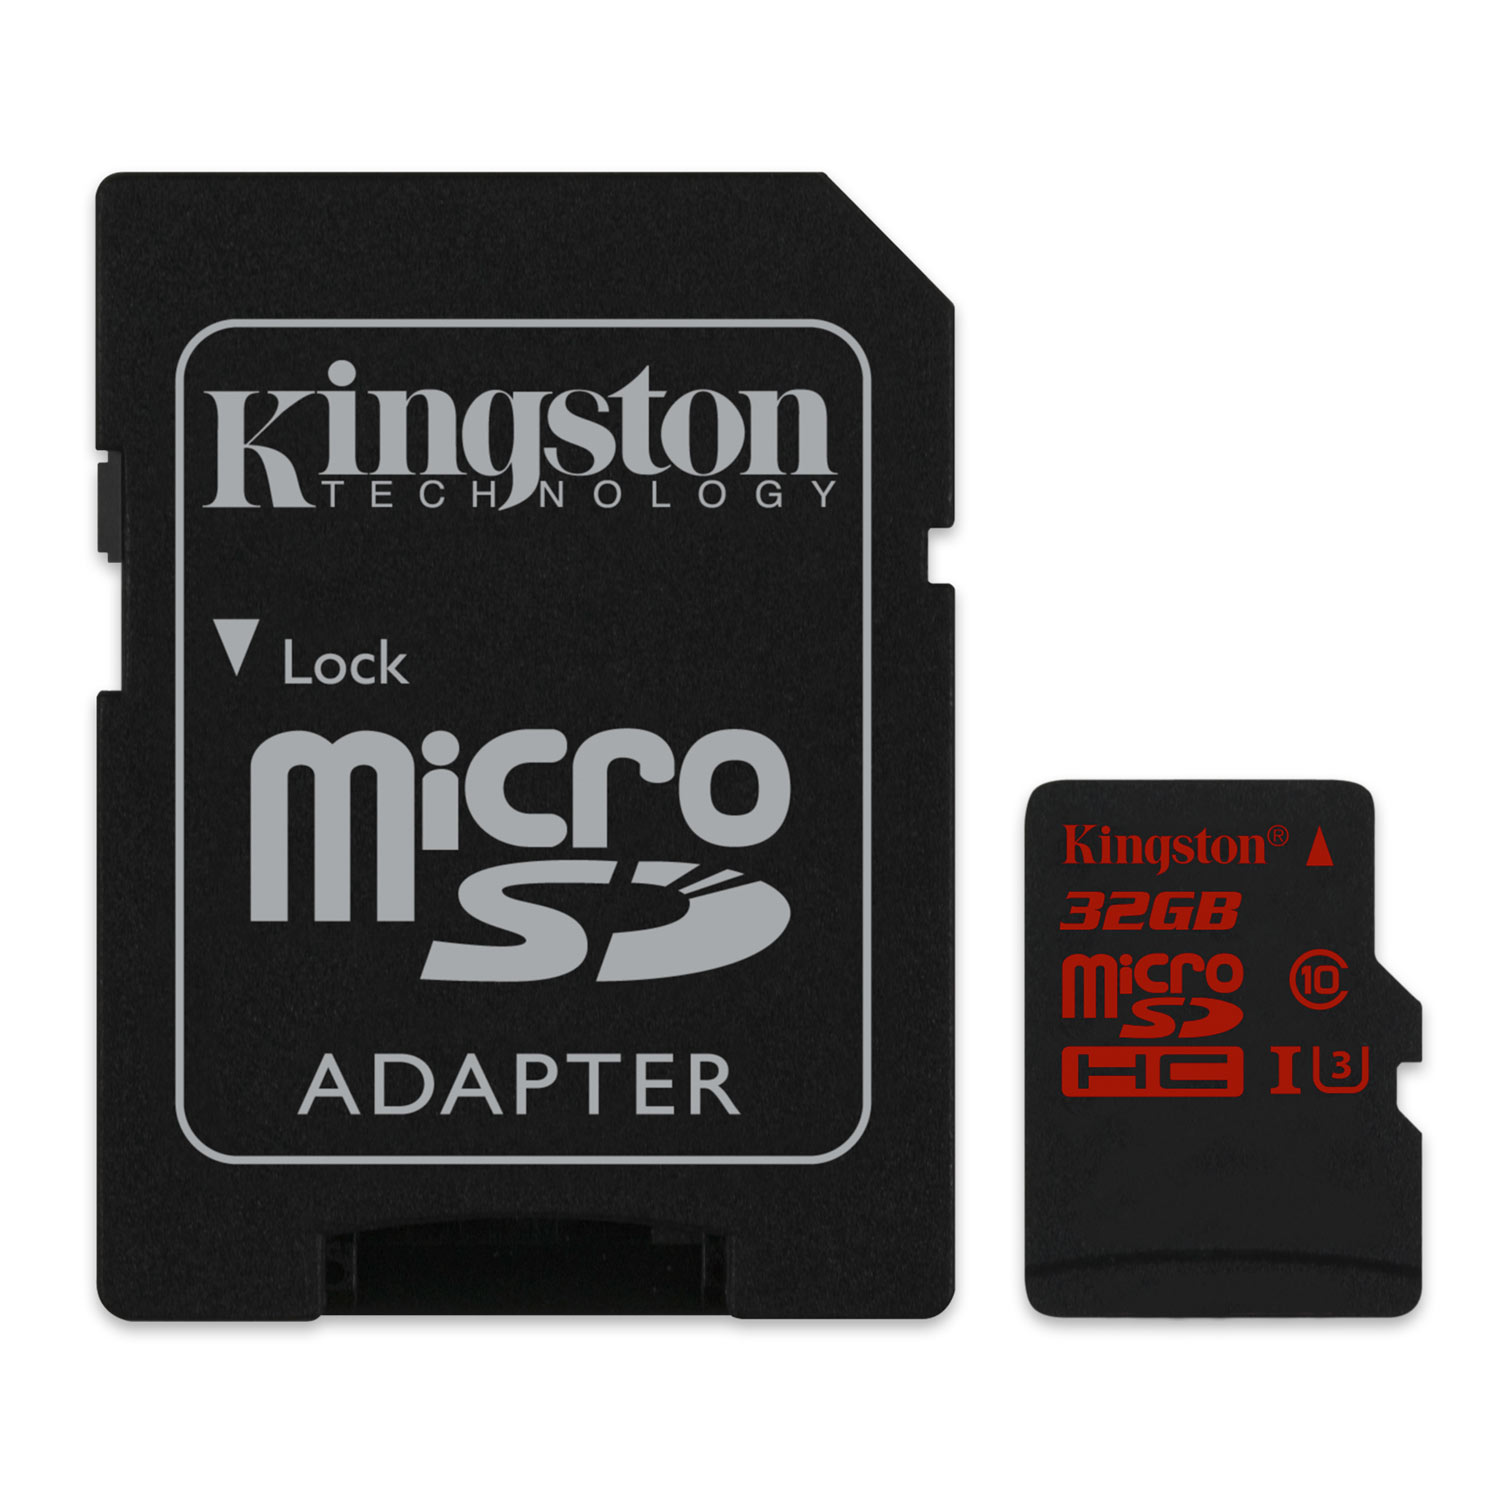 Kingston Micro SDHC 32Go UHS-I U3 + Adapt. - Carte mémoire - 3